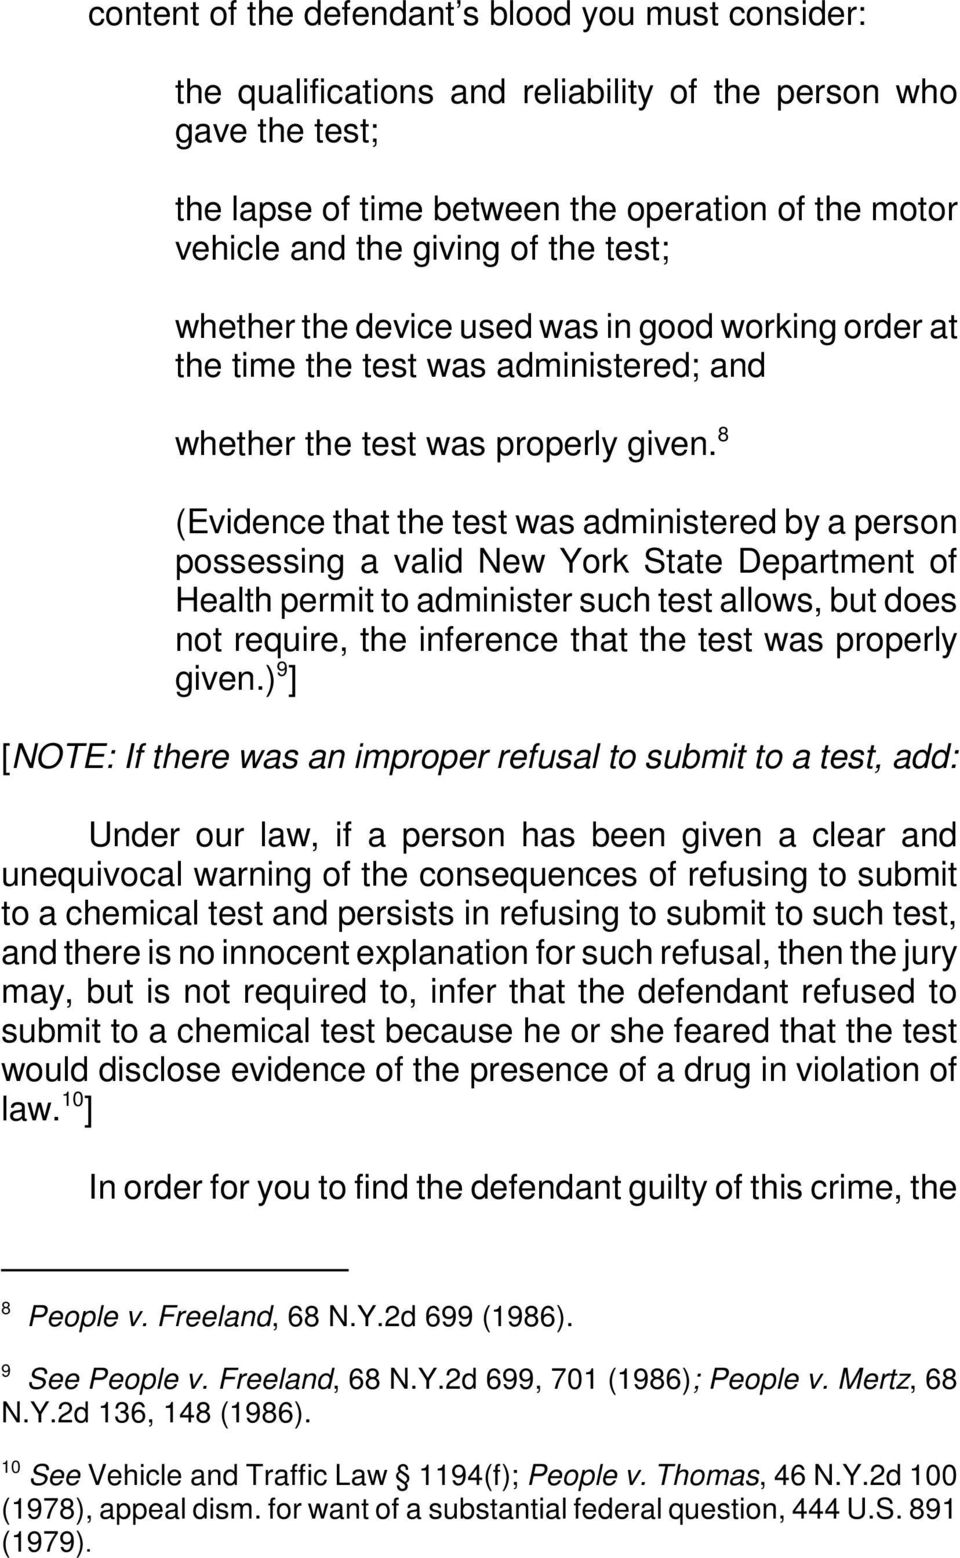 8 (Evidence that the test was administered by a person possessing a valid New York State Department of Health permit to administer such test allows, but does not require, the inference that the test